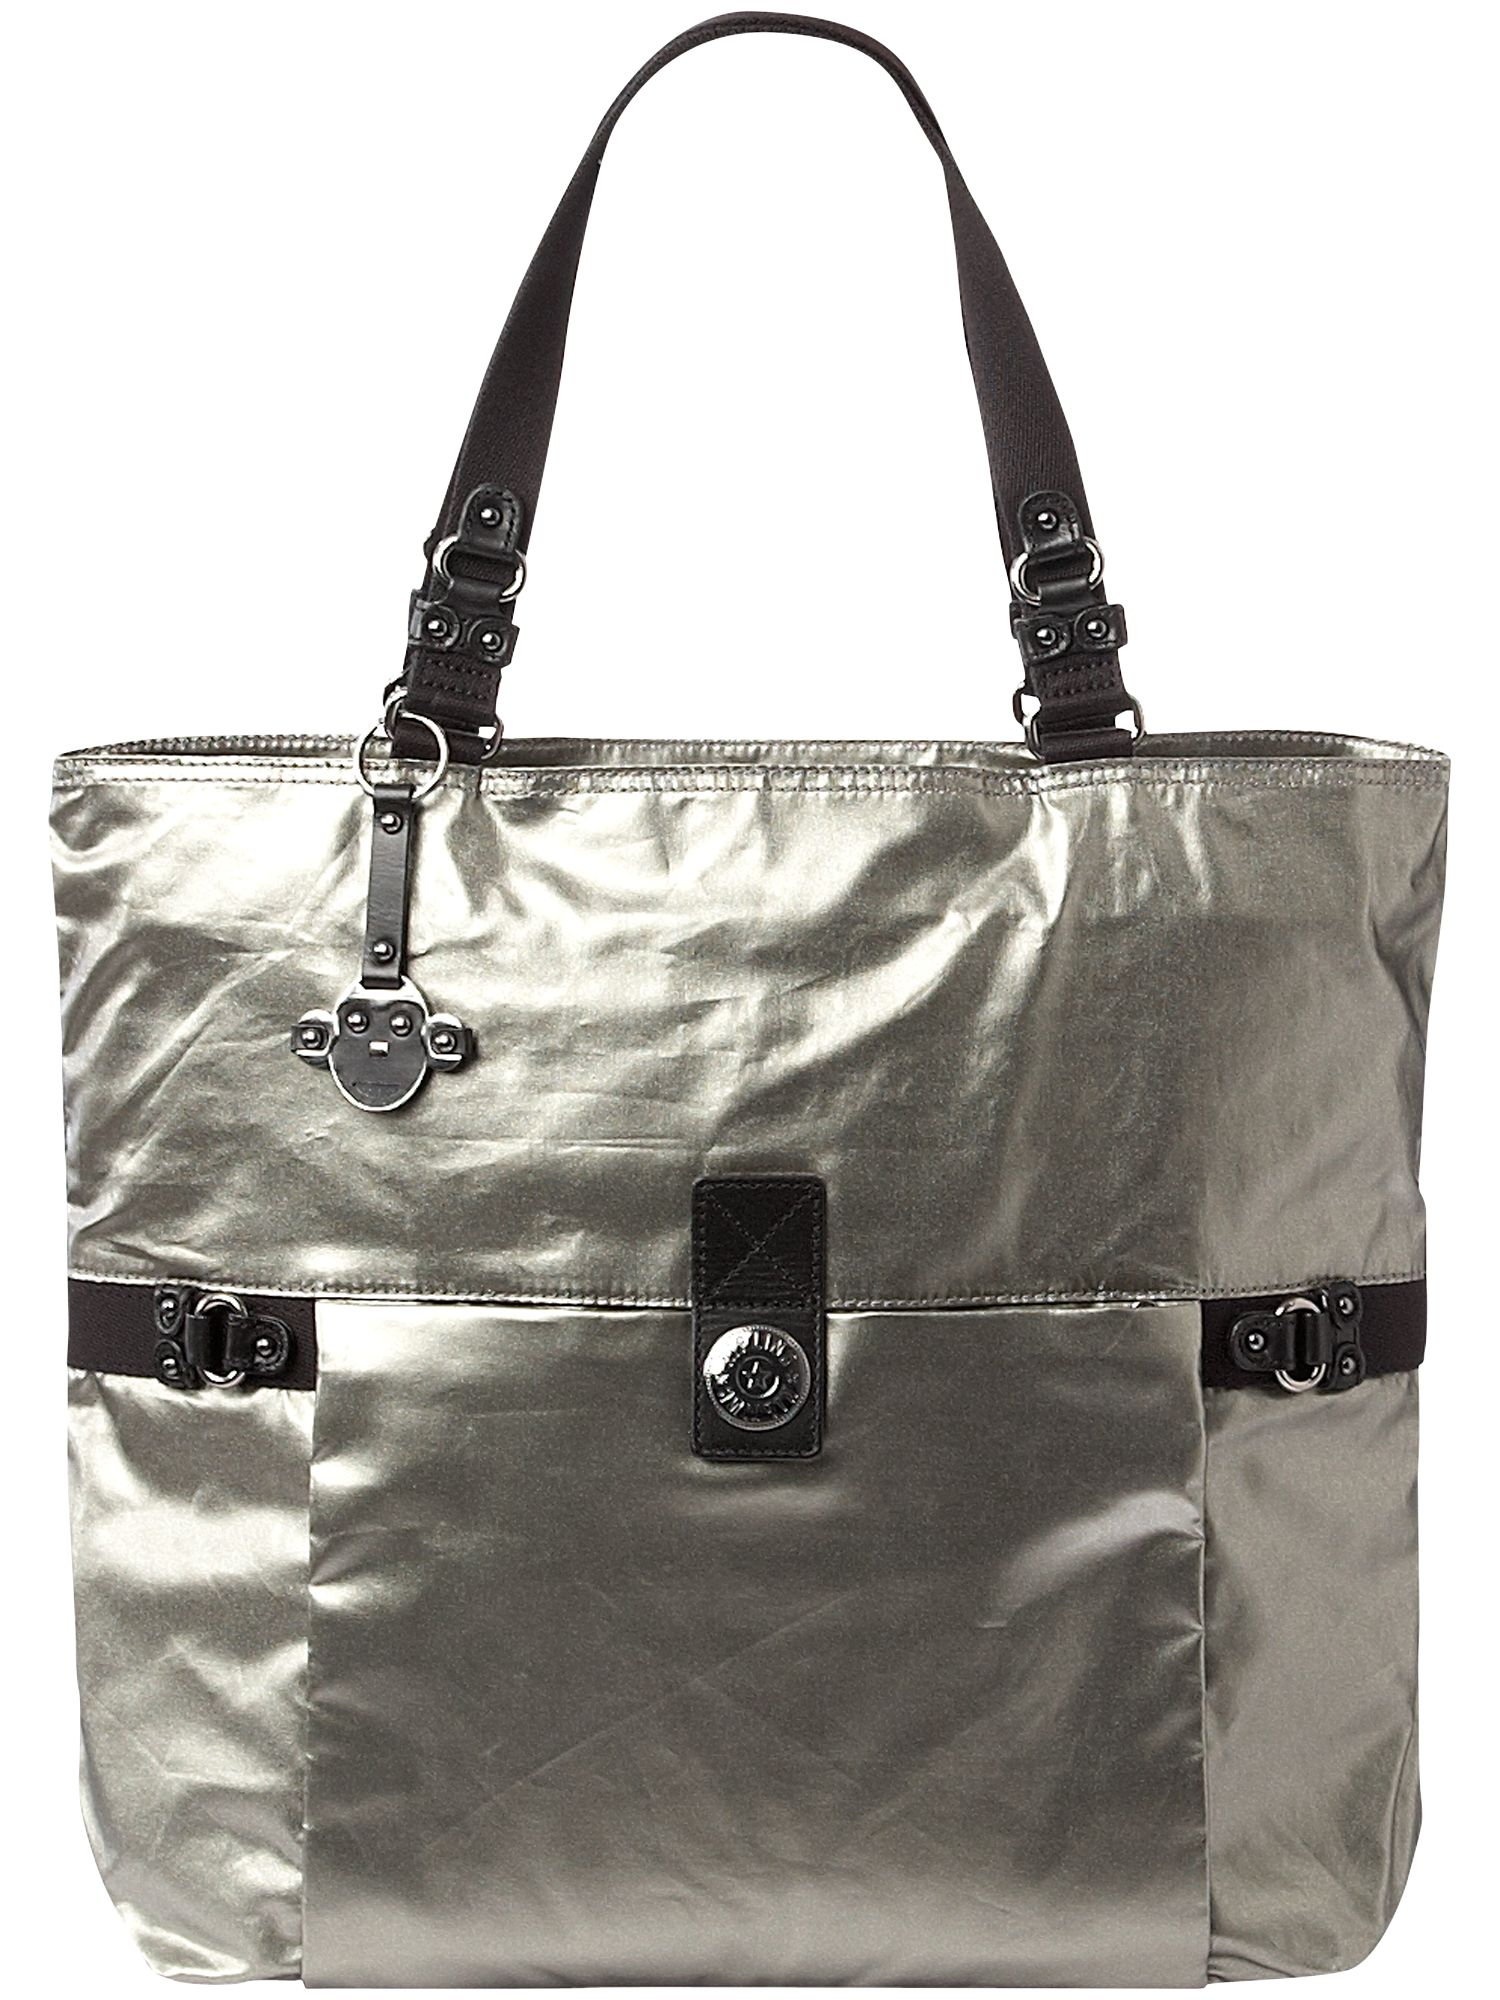 City large metallic nylon shoulder tote